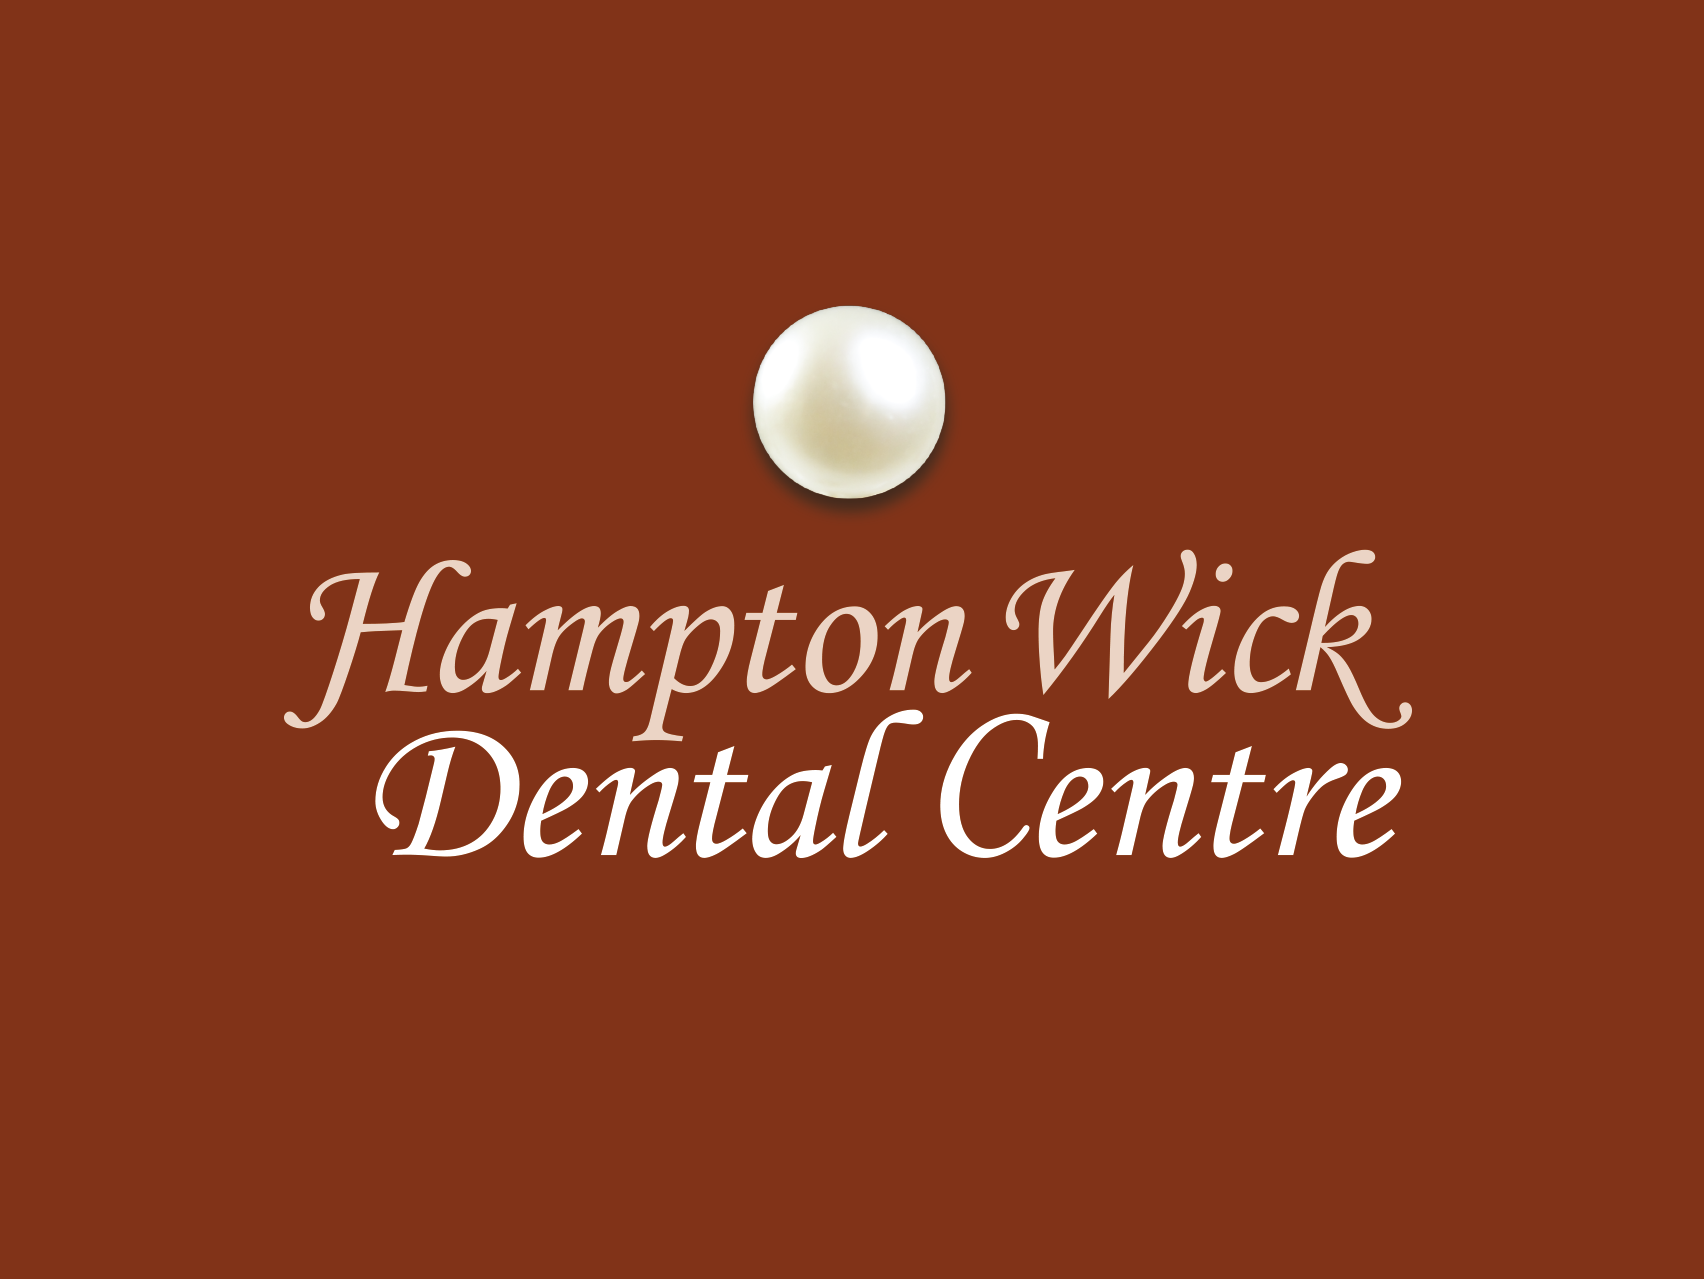 Hampton Wick Dental Centre pearl logo design